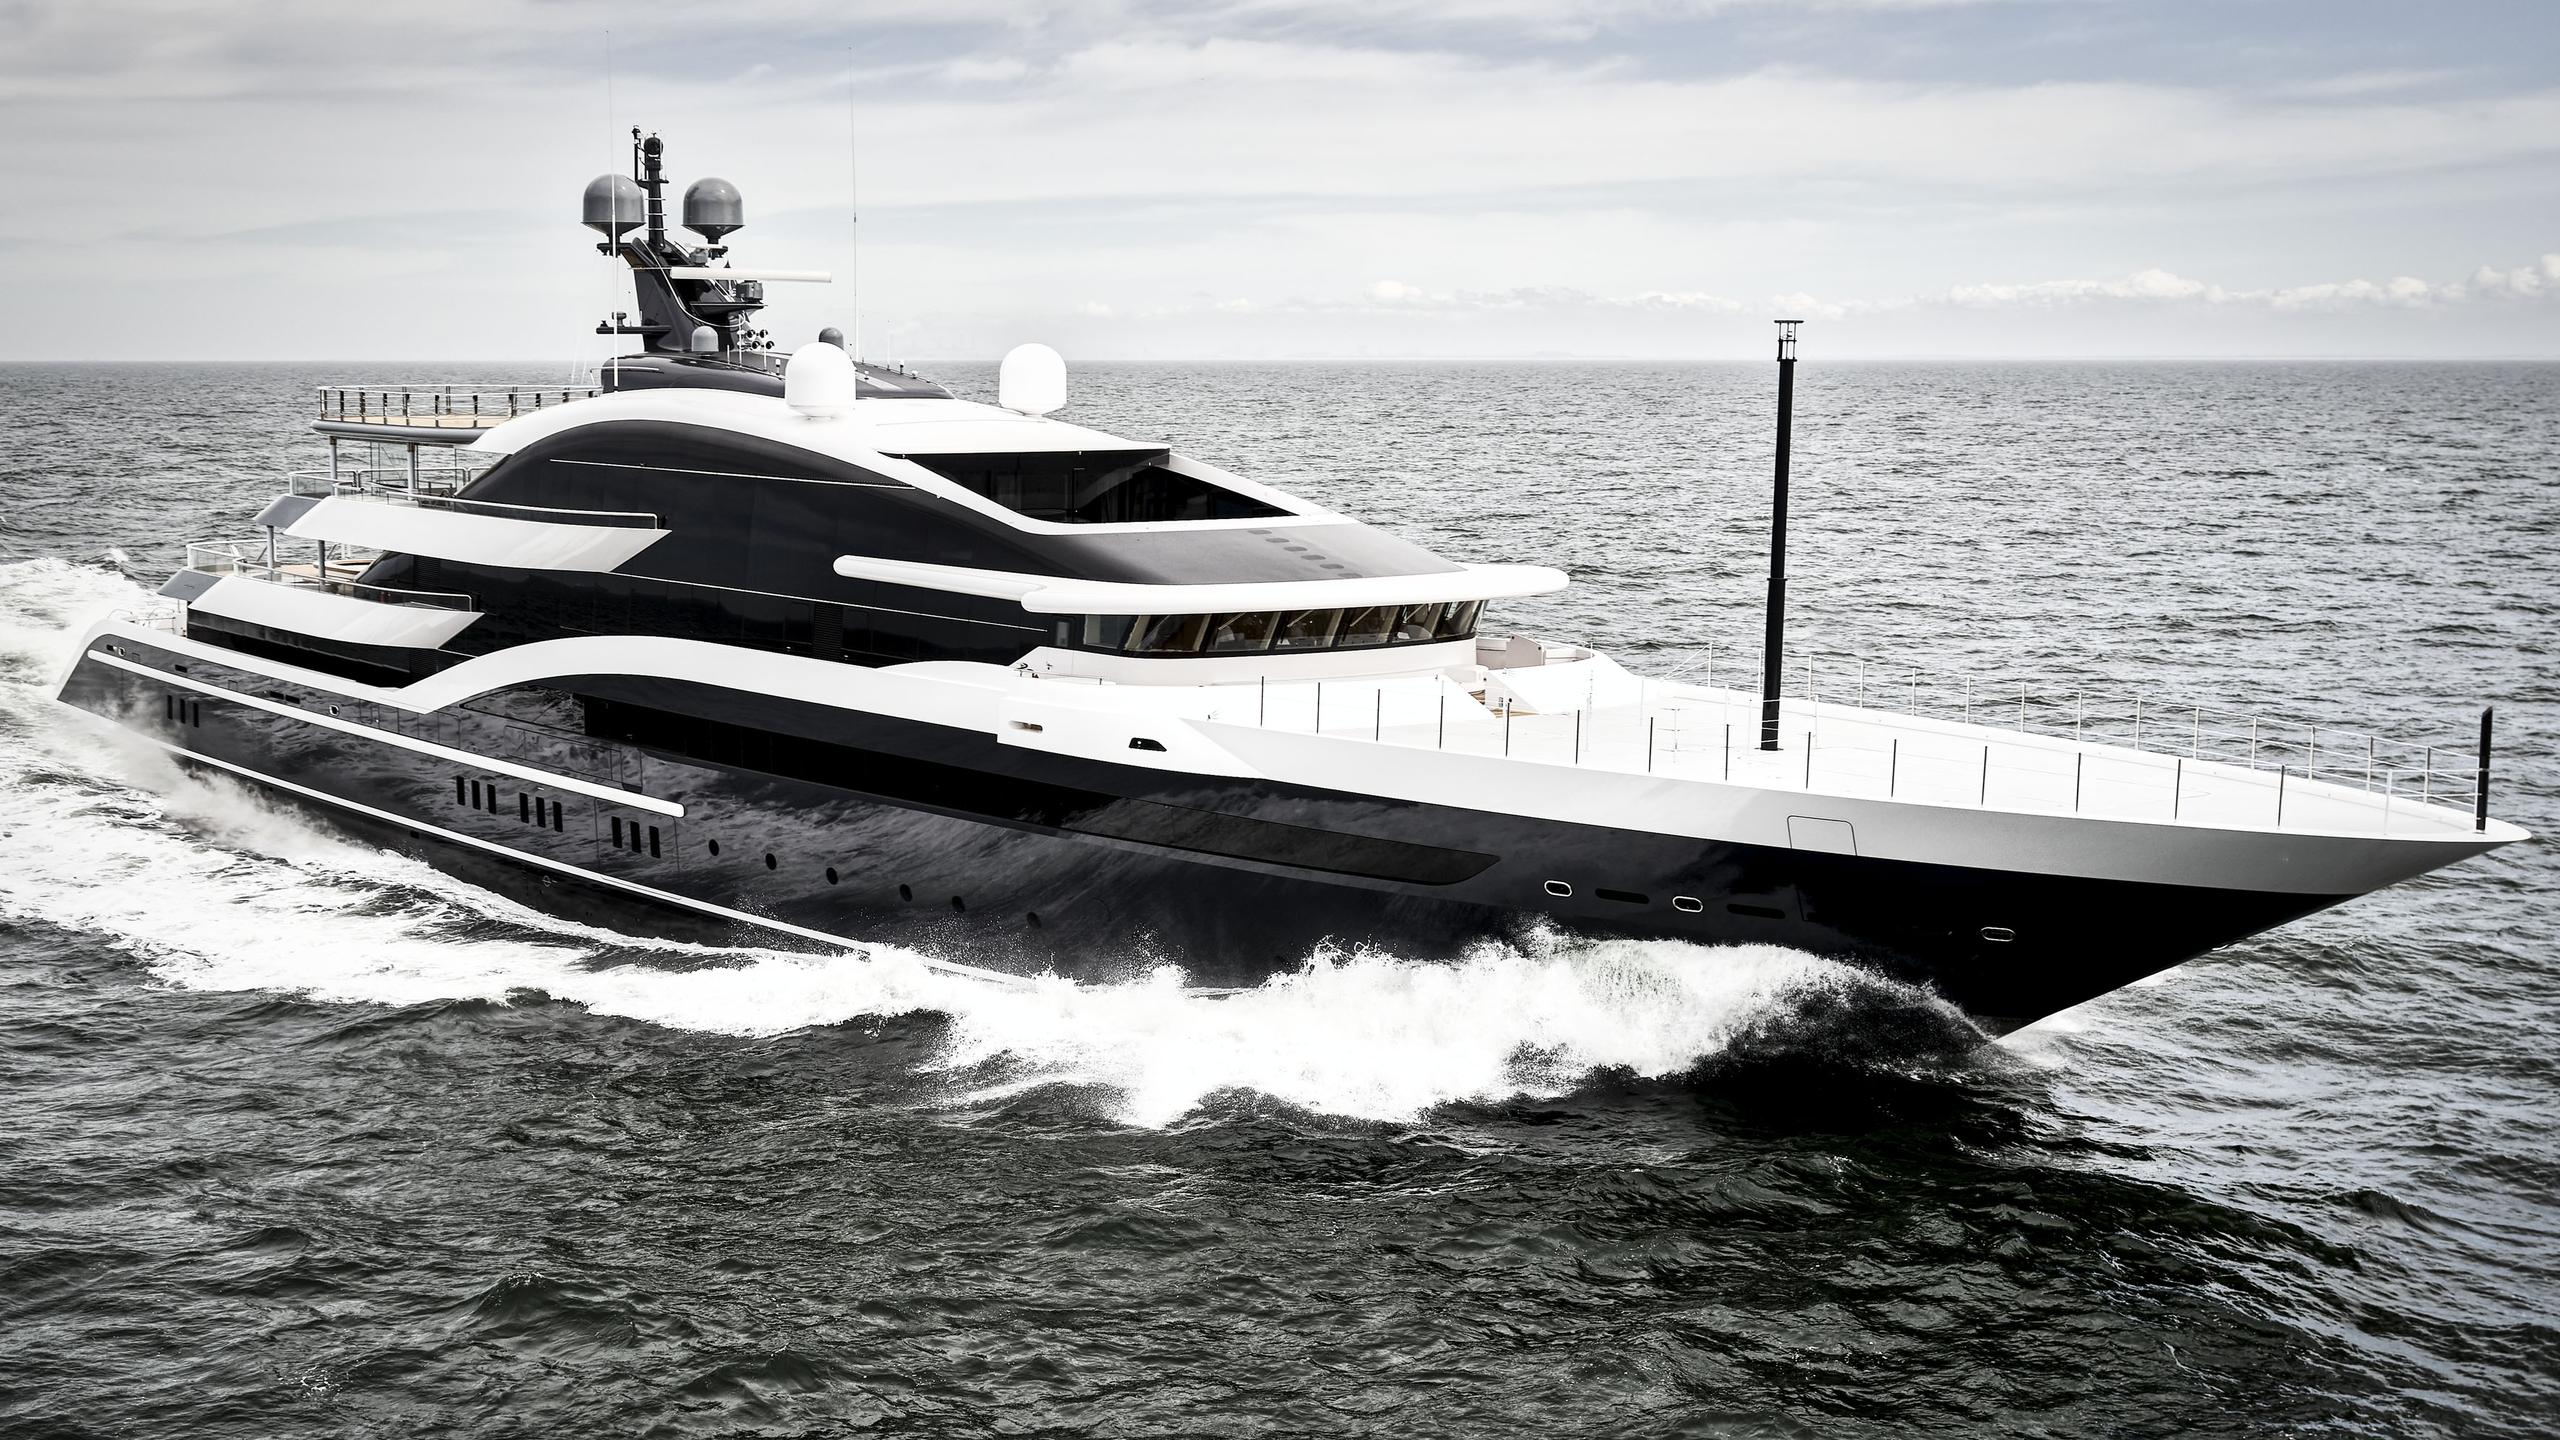 dar project shark y717 motoryacht oceanco 90m 2018 sea trials half profile